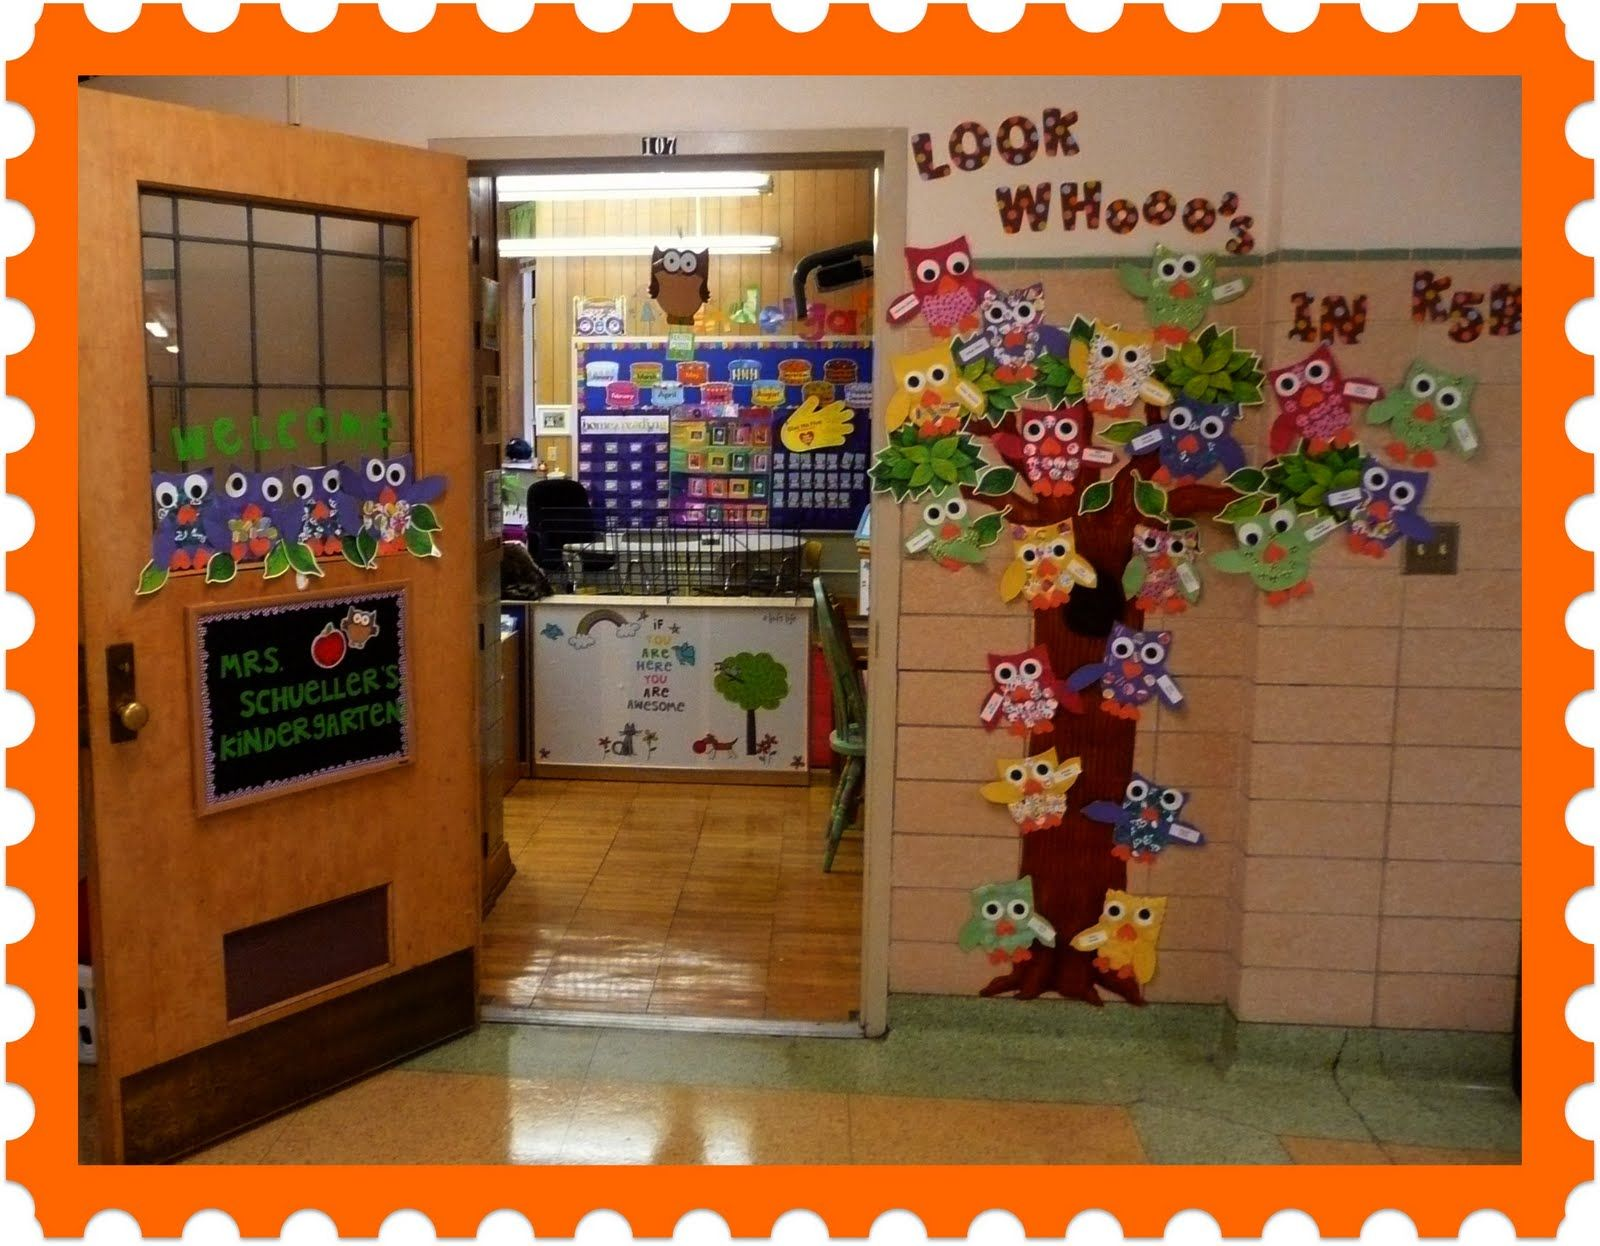 The Very Busy Kindergarten: Beginning of the Year